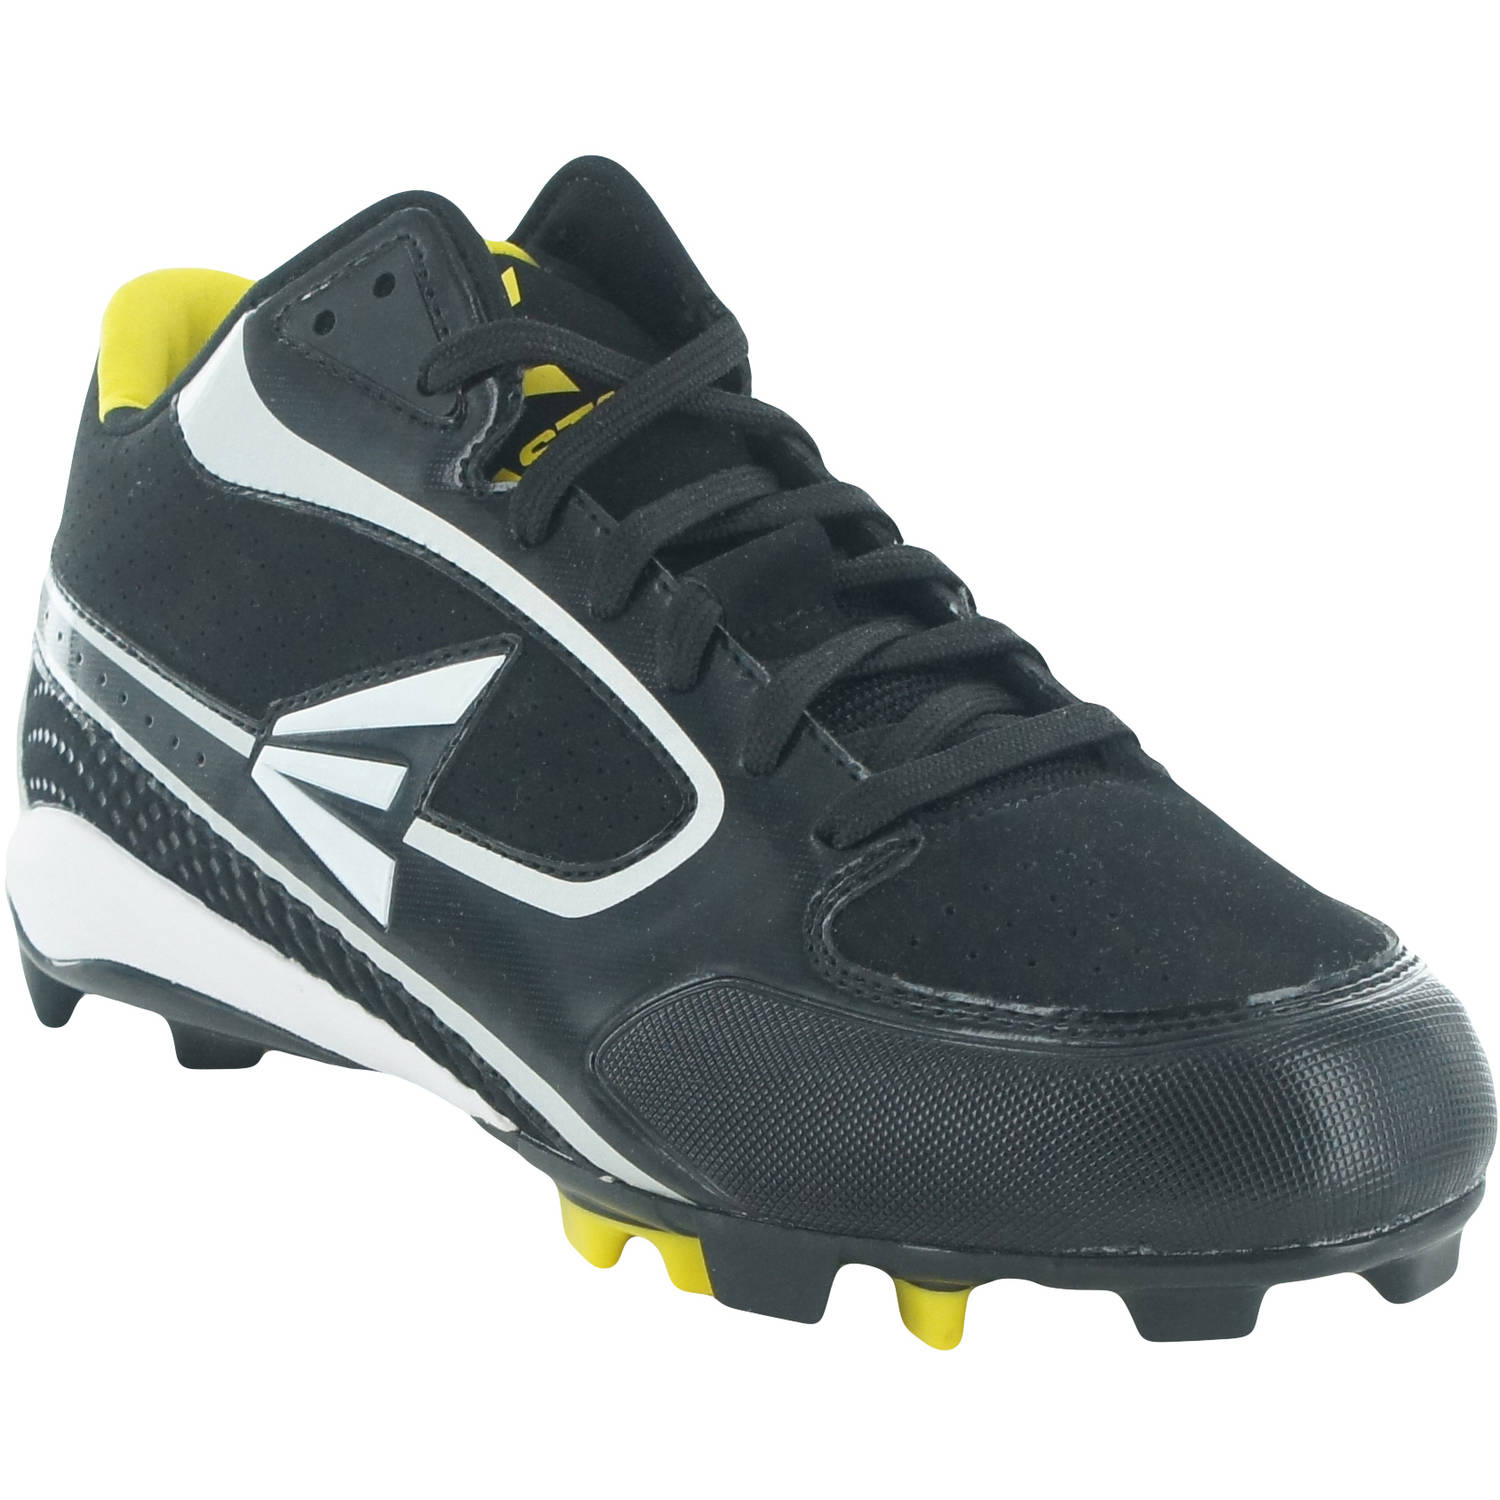 Easton Men's Sonic Mid Cleat